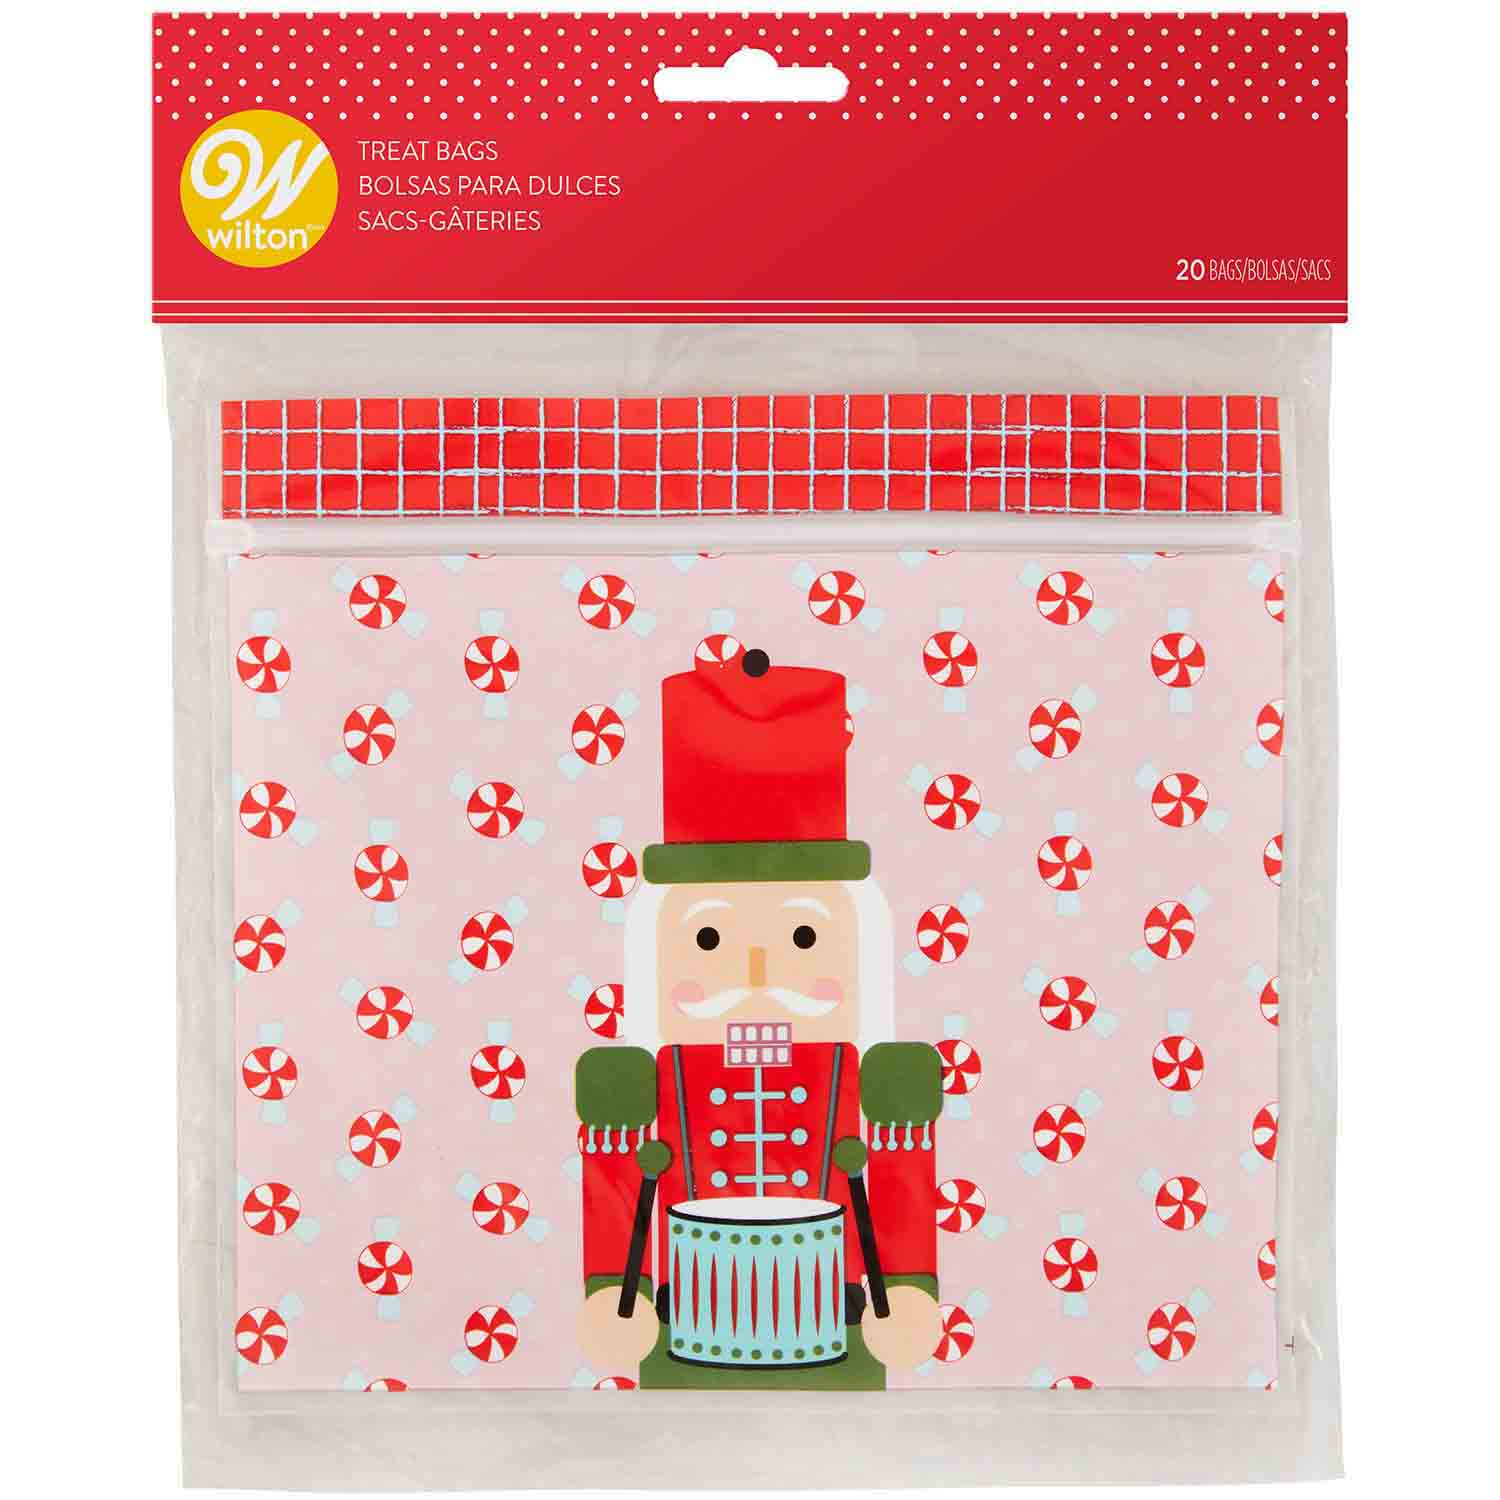 Nutcracker Resealable Bags